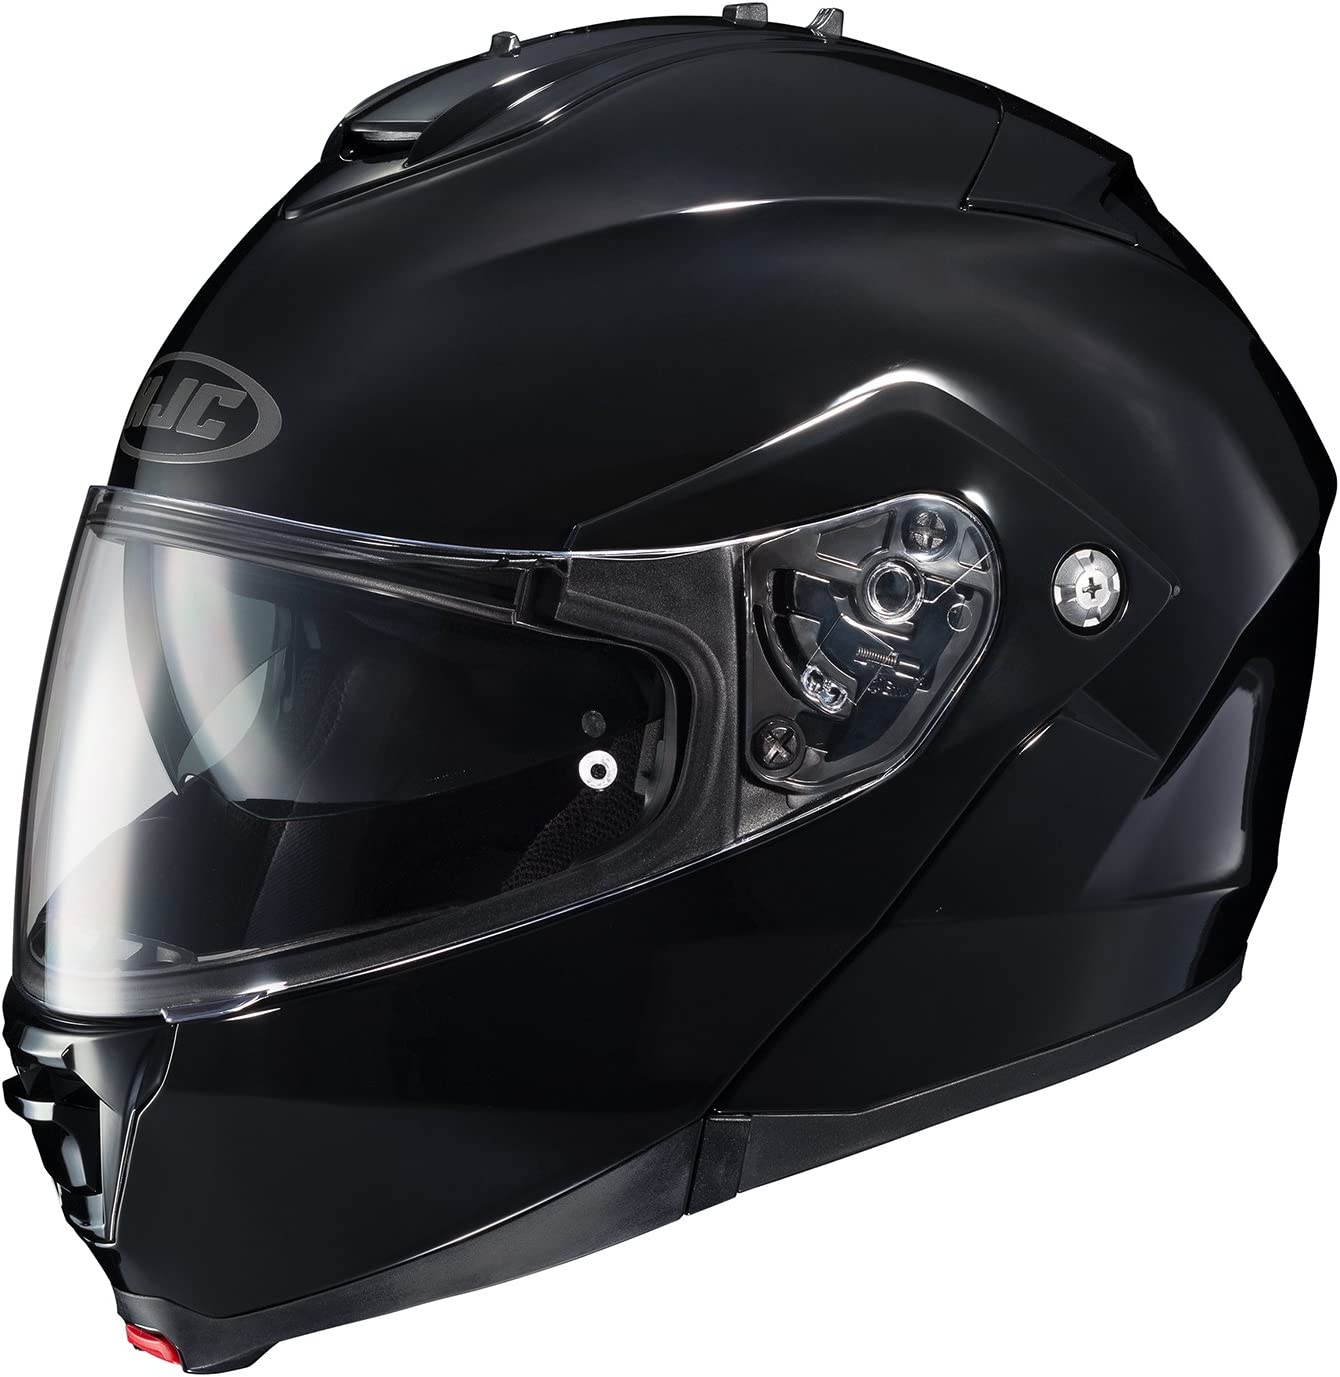 HJC IS-MAX2 Solid Modular/Flip Up Helmet (Black, Large)